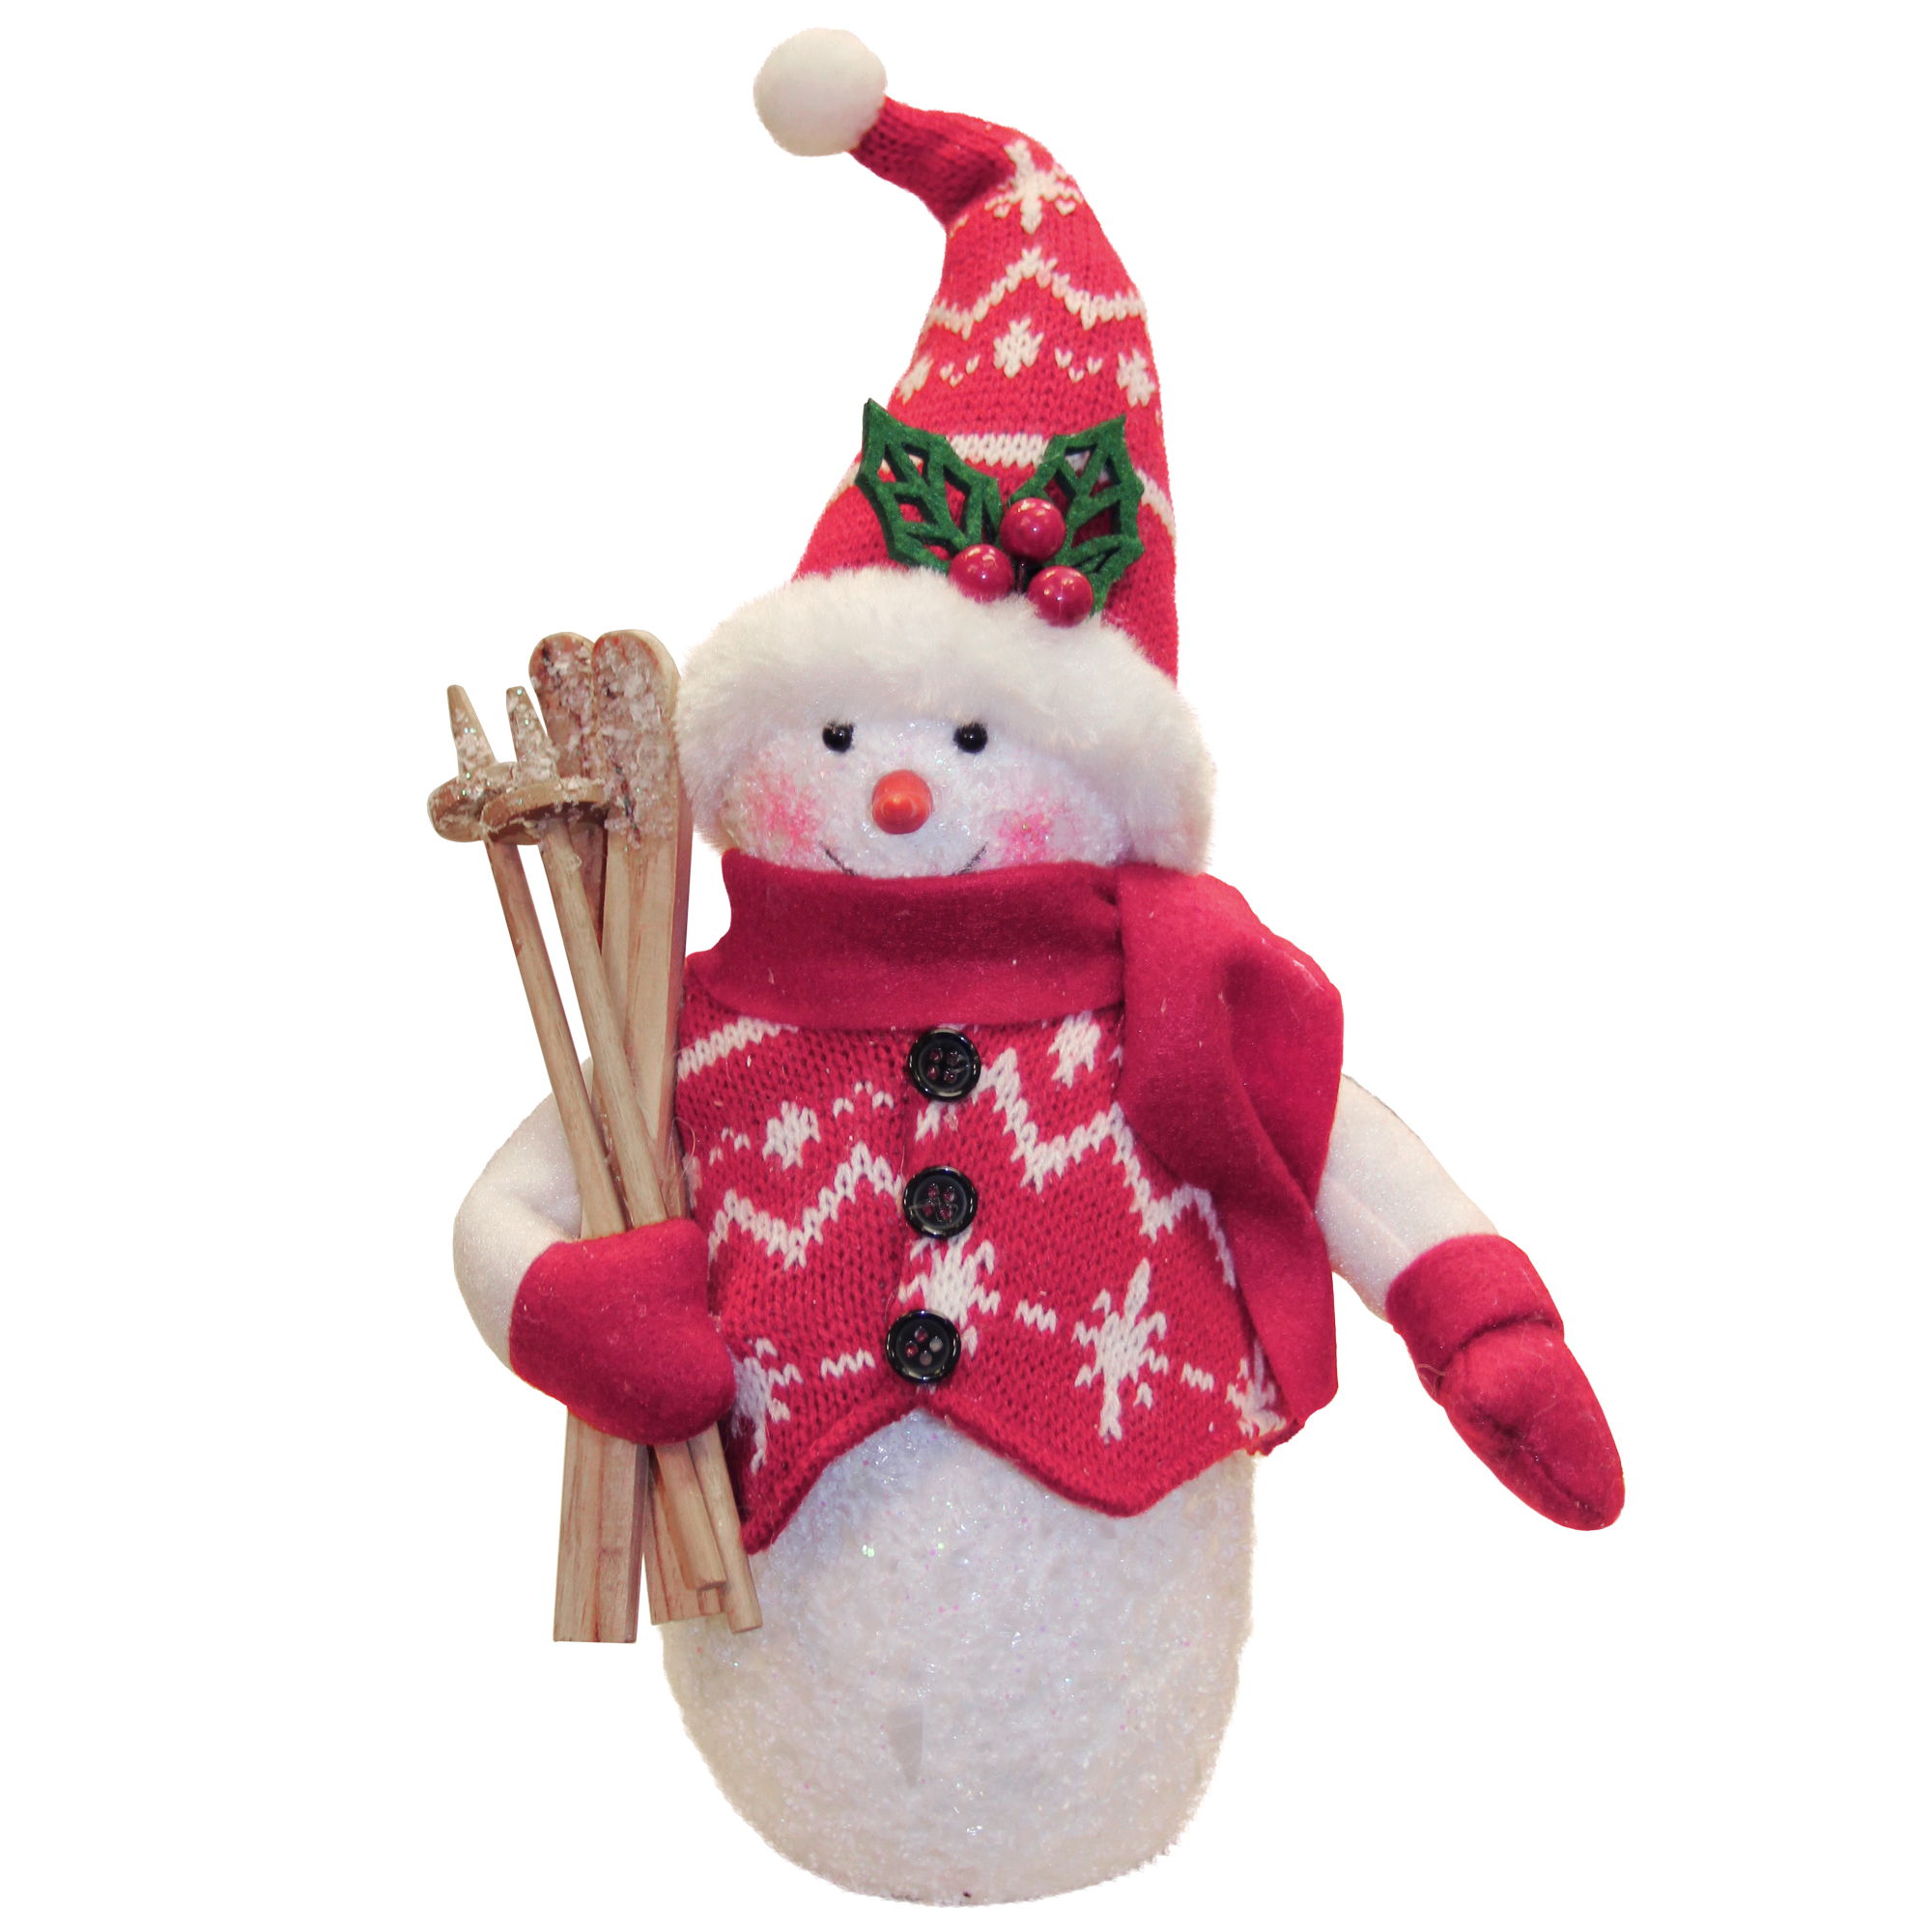 10 Alpine Chic Red And White Sparkling Snowman With Skiis Christmas Decoration Walmart Com Walmart Com